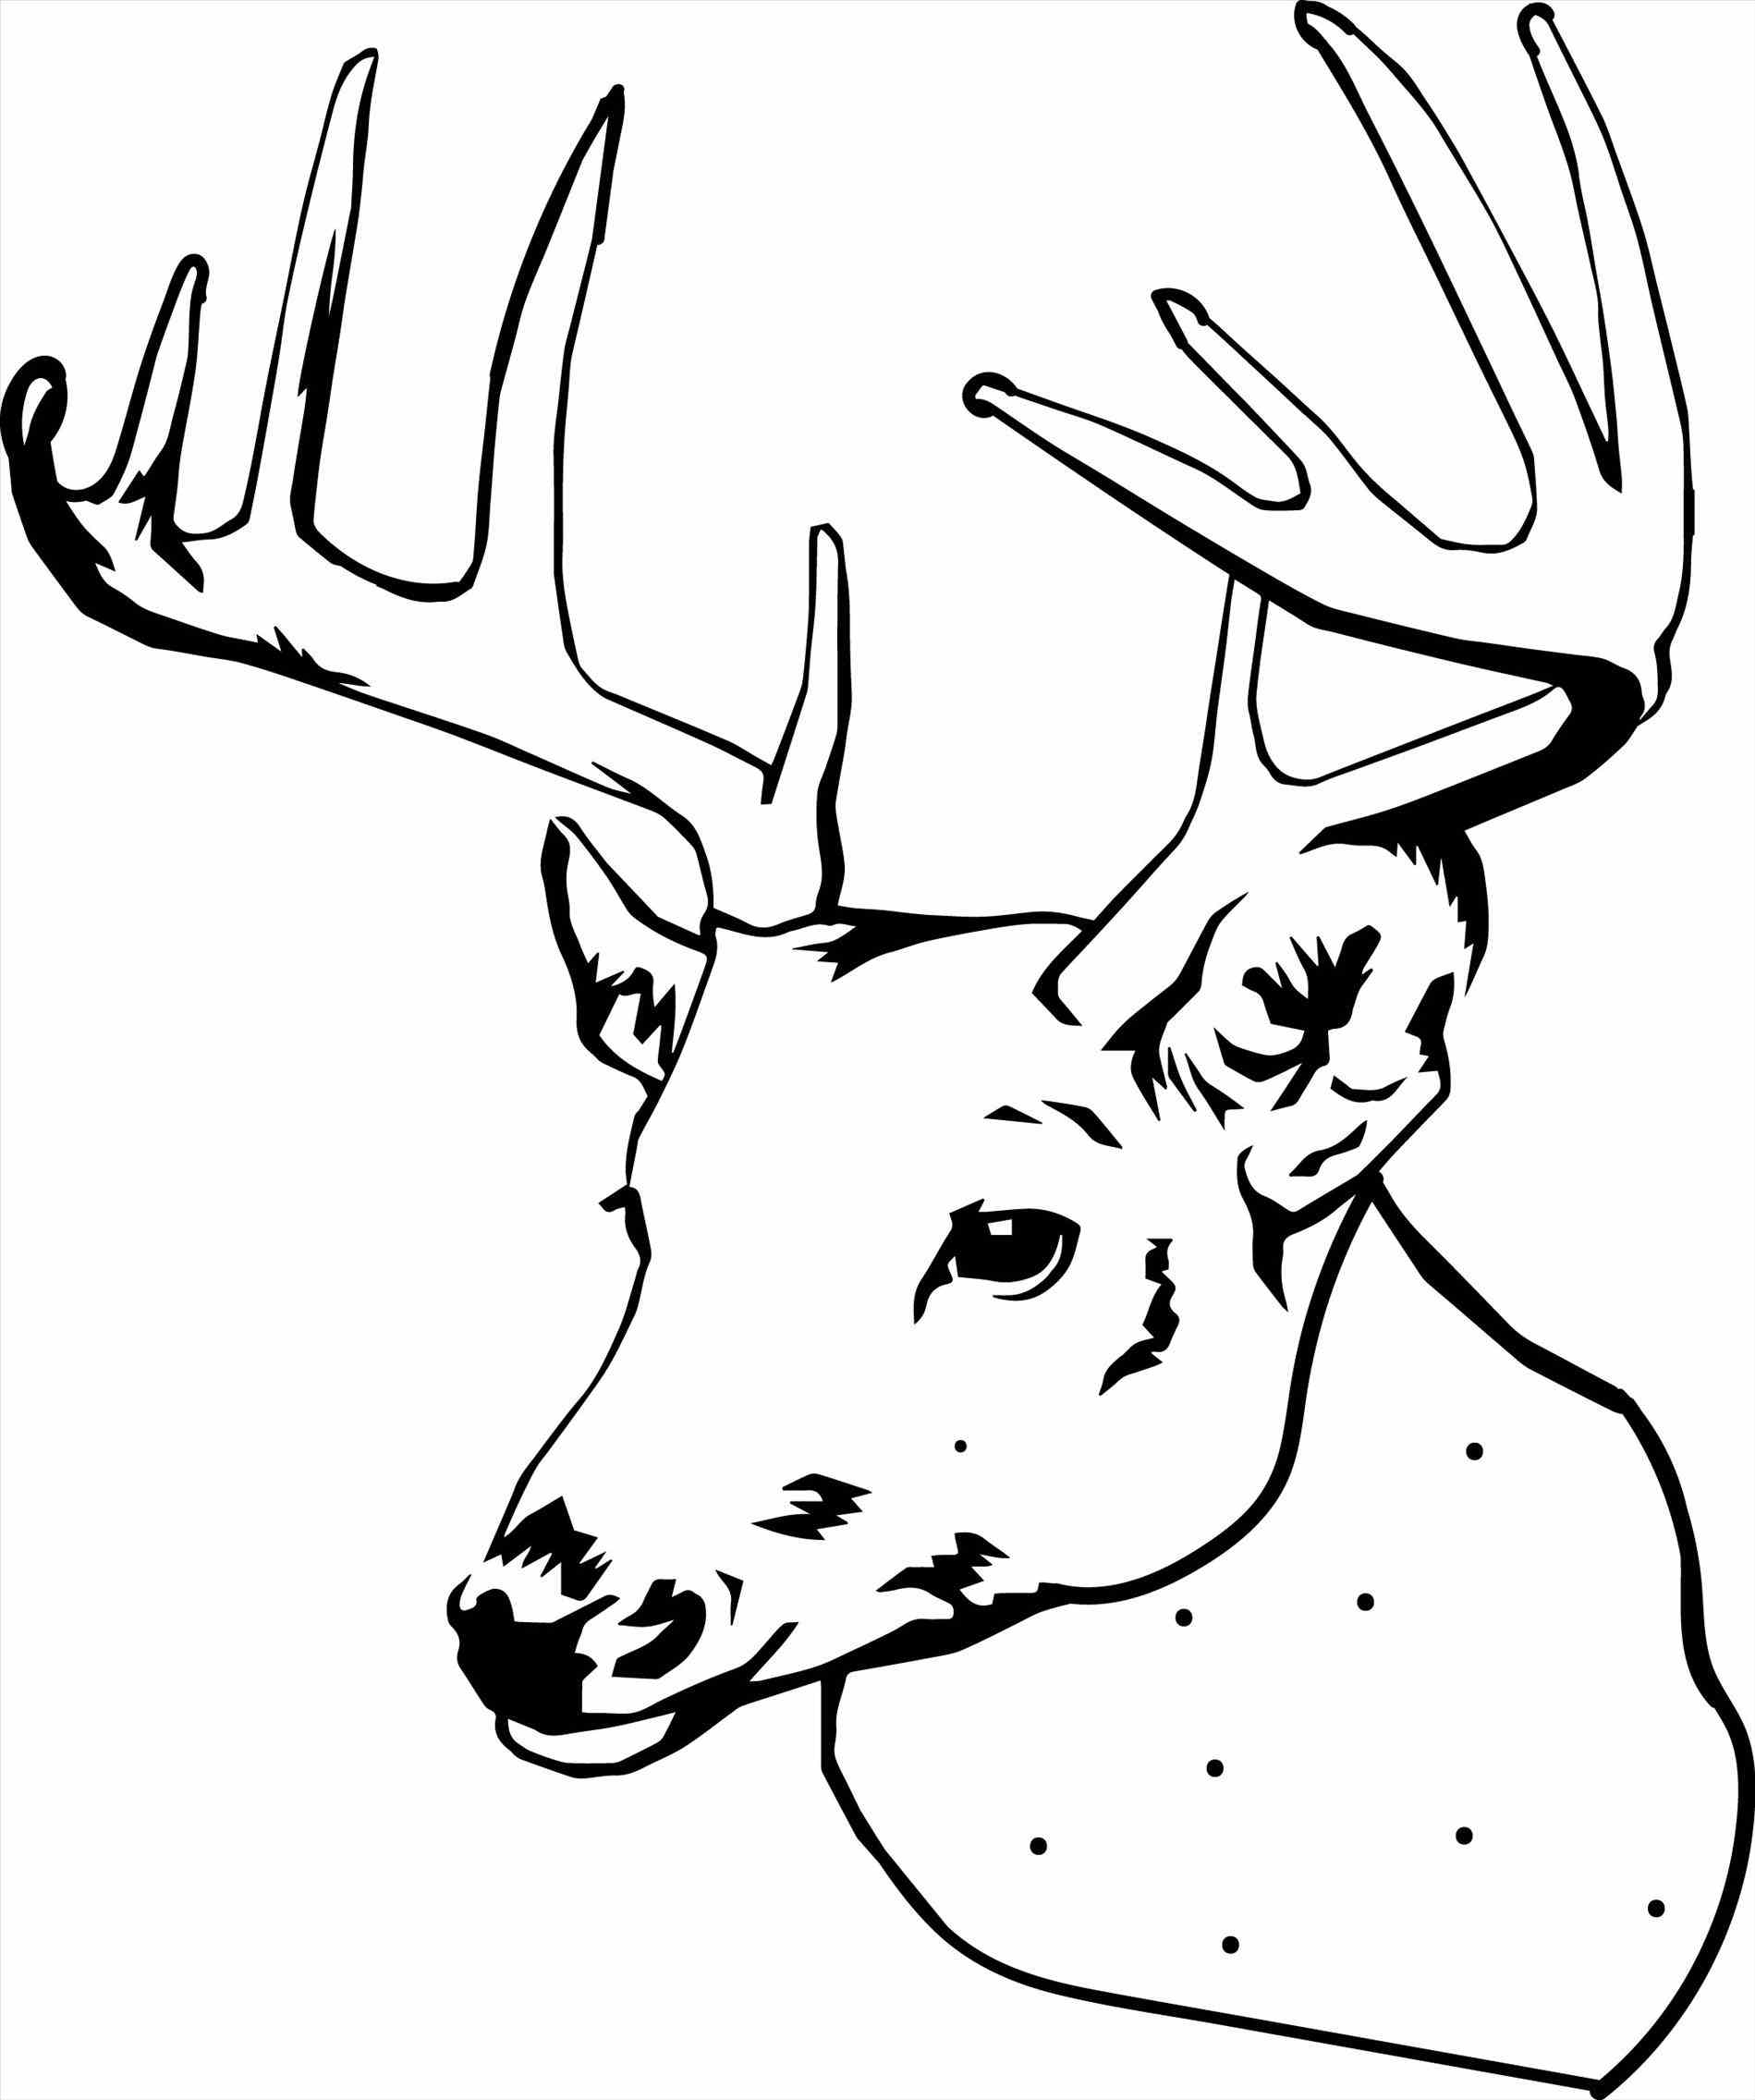 Deer Coloring Pages Coloring Design Deer Coloring Pages Free Download Best On